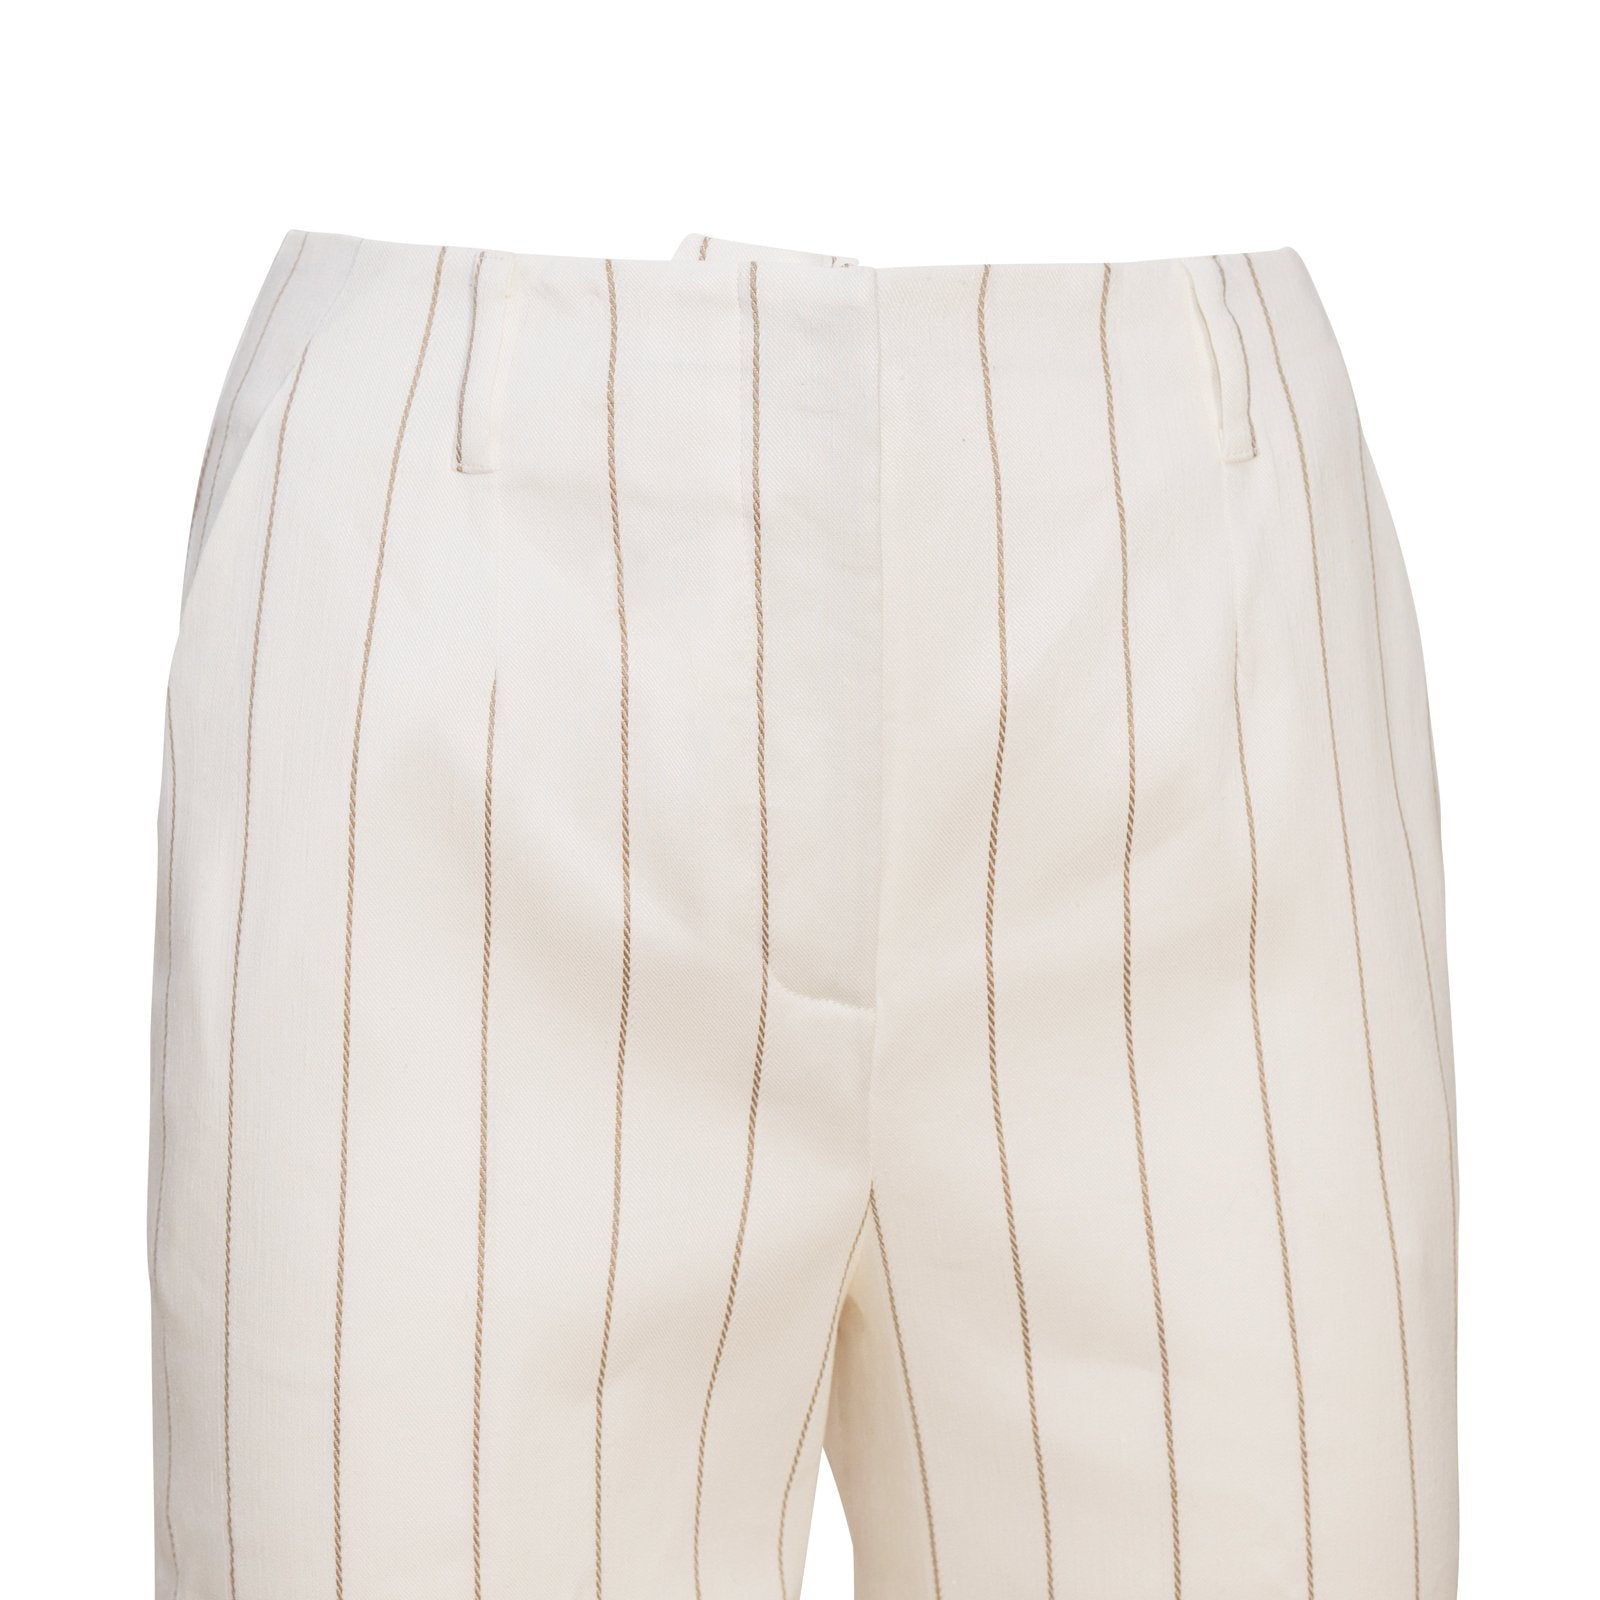 PUR3003 STRIPES PANTS - Jennifer Tattanelli